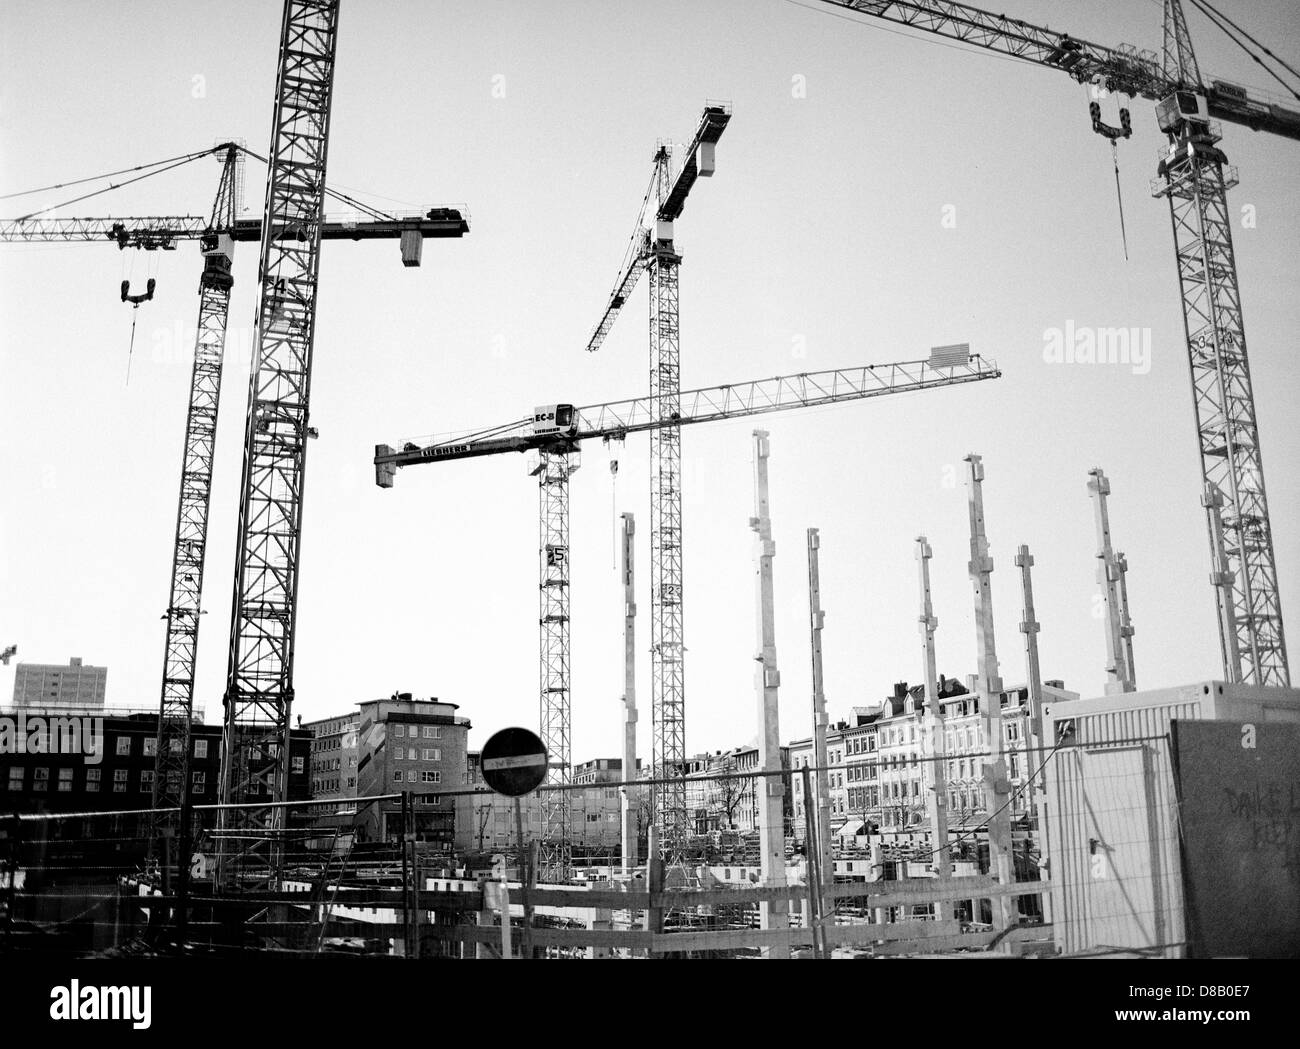 New IKEA branch in the making. Building site at Grosse Bergstrasse in Altona district of Hamburg. - Stock Image